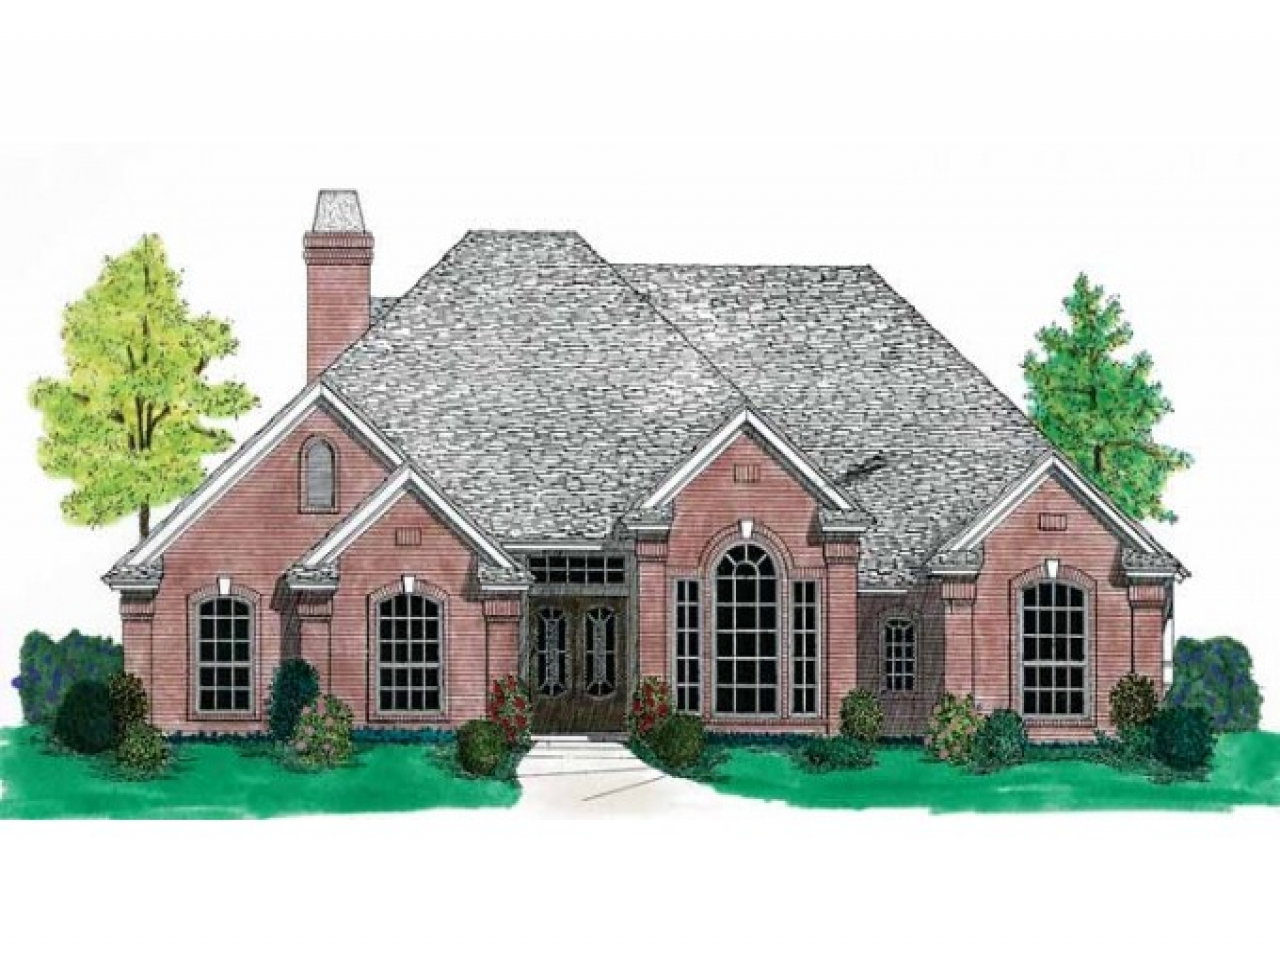 French country house plans one story small country house for Small french country homes